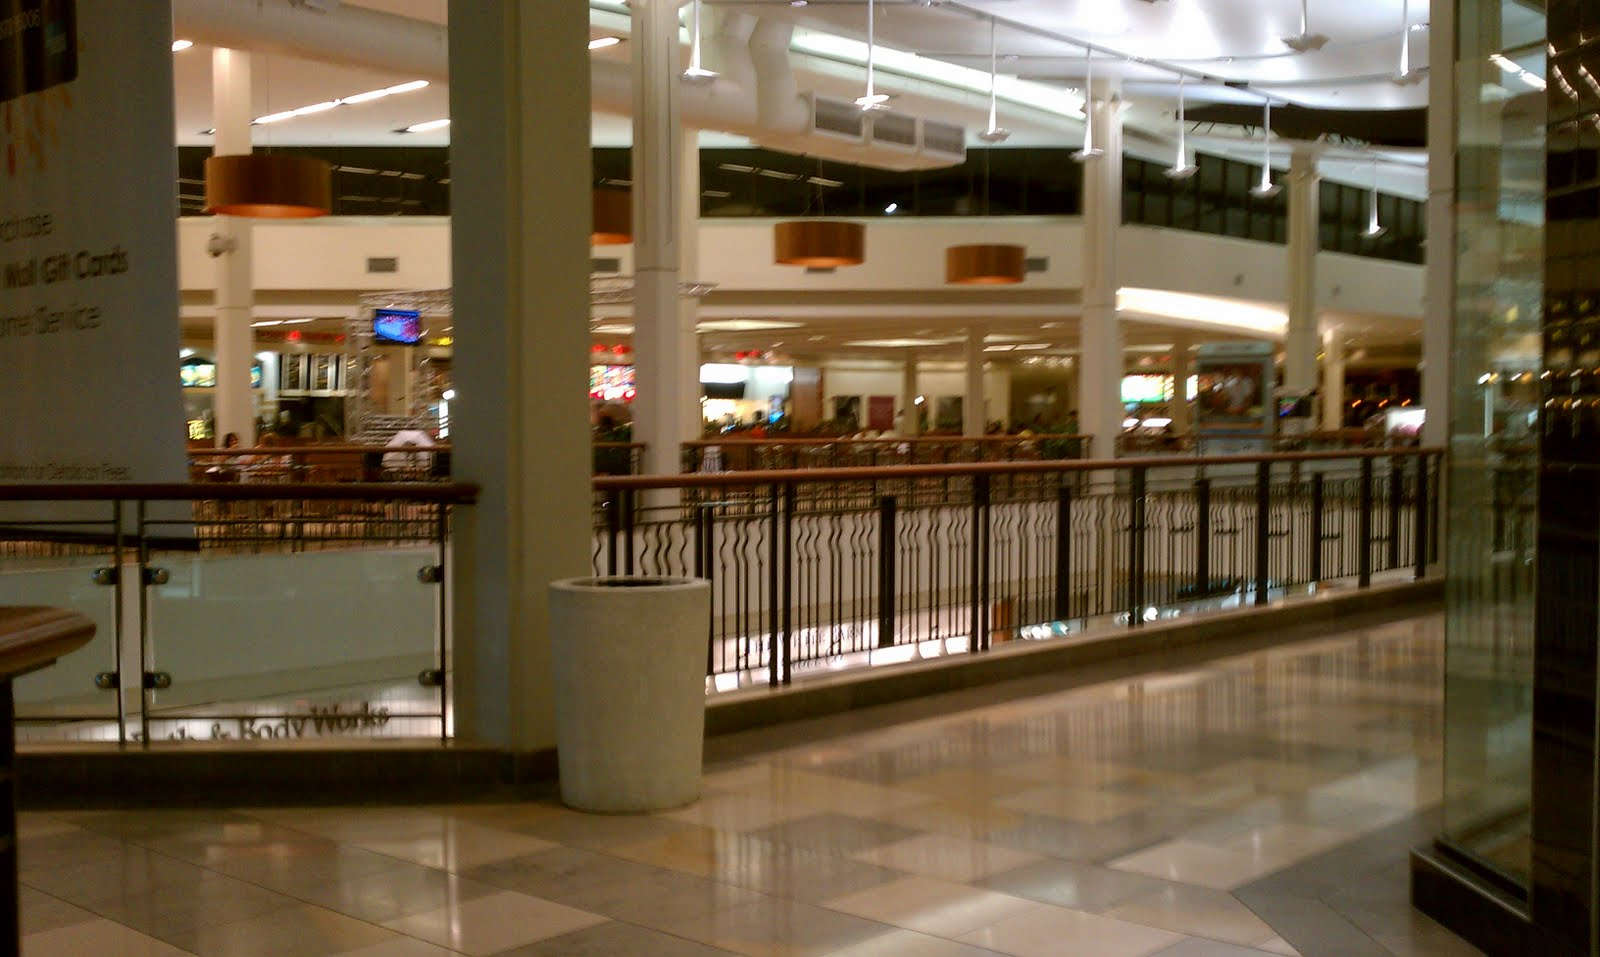 The Louisiana And Texas Retail Blogspot North Star Mall